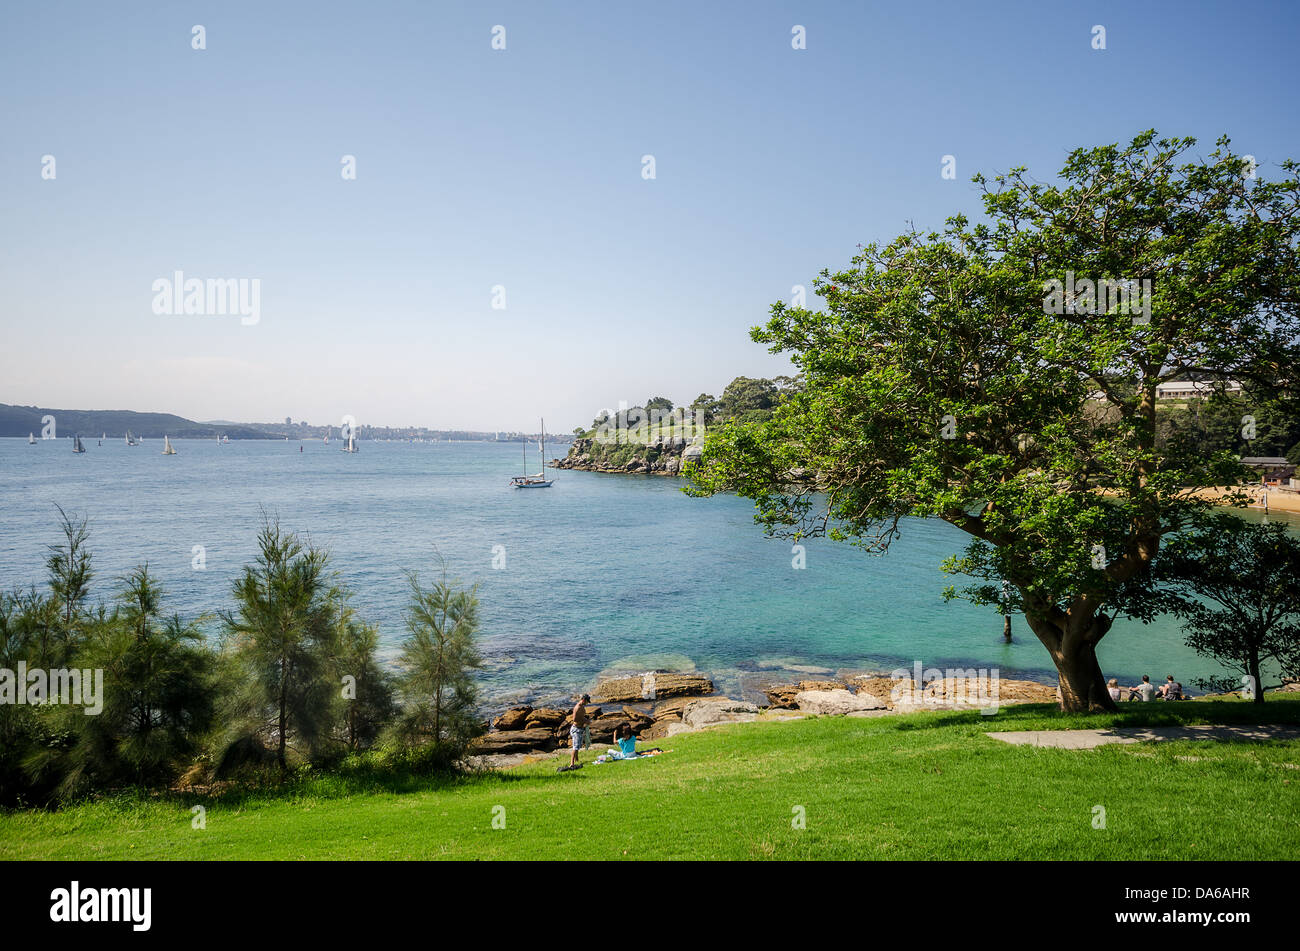 Parsley Bay in Sydney with its cove, and lawned park. - Stock Image